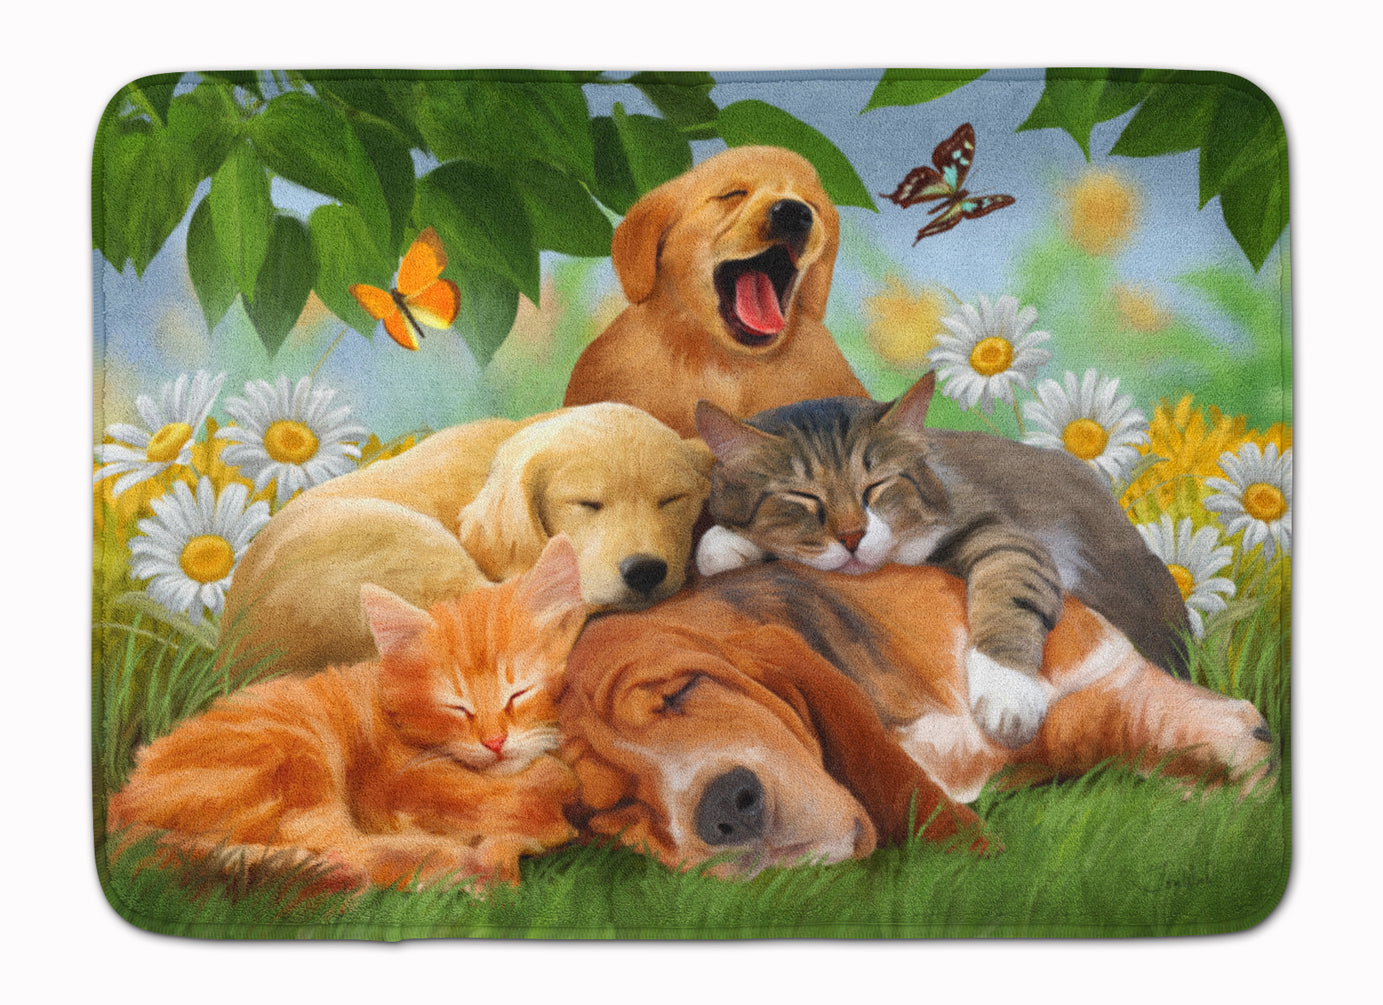 Golden Retriever, Labrador and Basset Hound Sleepy Heads Machine Washable Memory Foam Mat PTW2049RUG by Caroline's Treasures